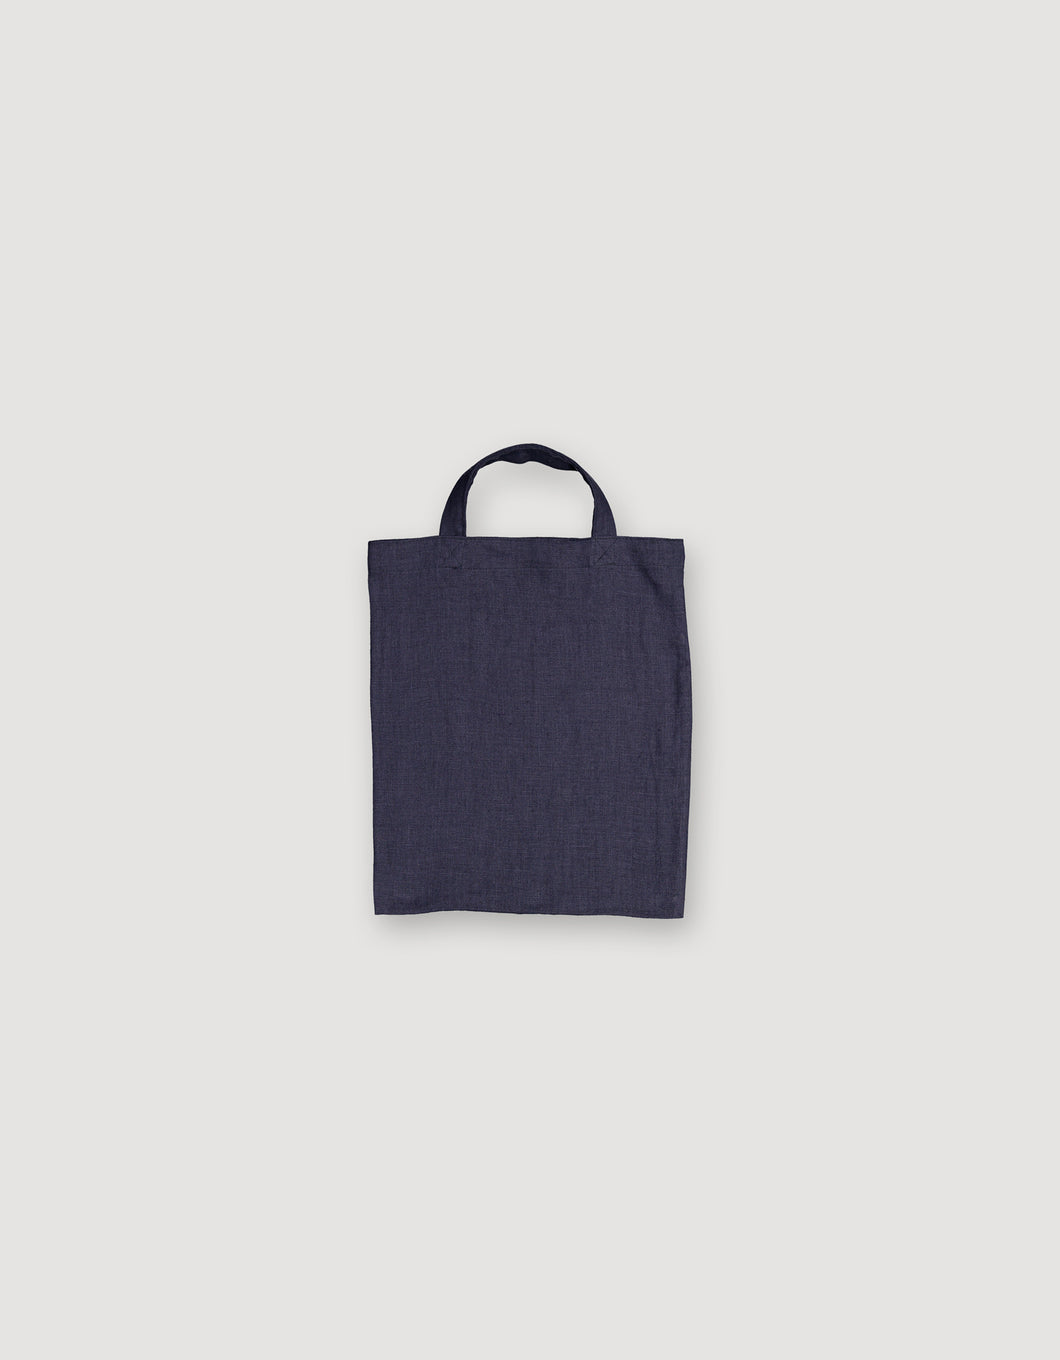 MINI TOTE BAG (DARK BLUE)